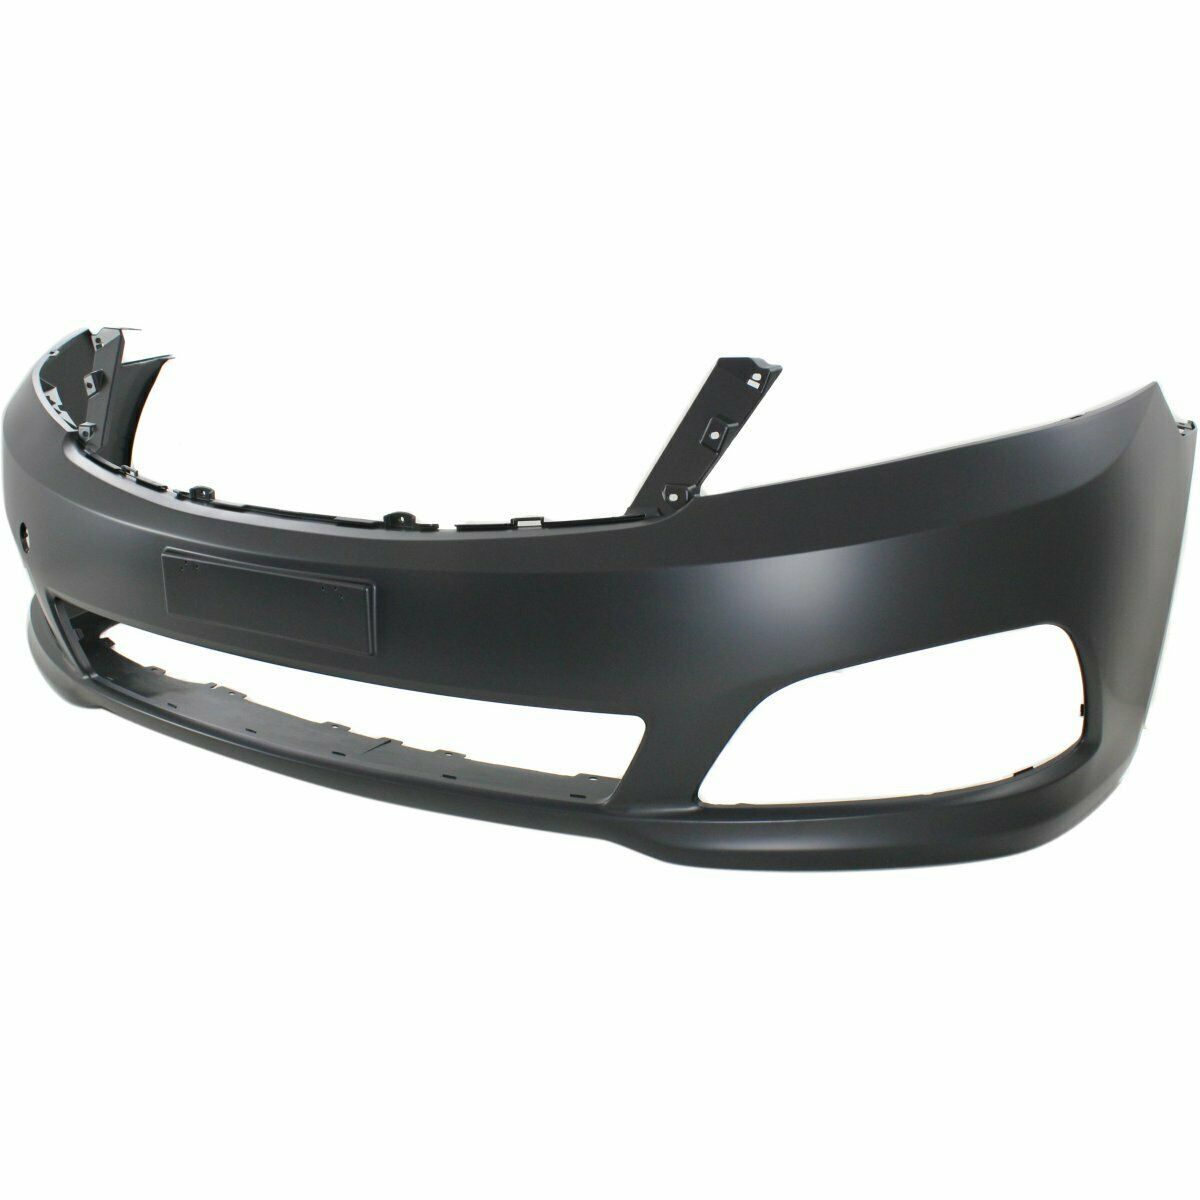 2009-2010 Kia Optima Front Bumper Painted to Match